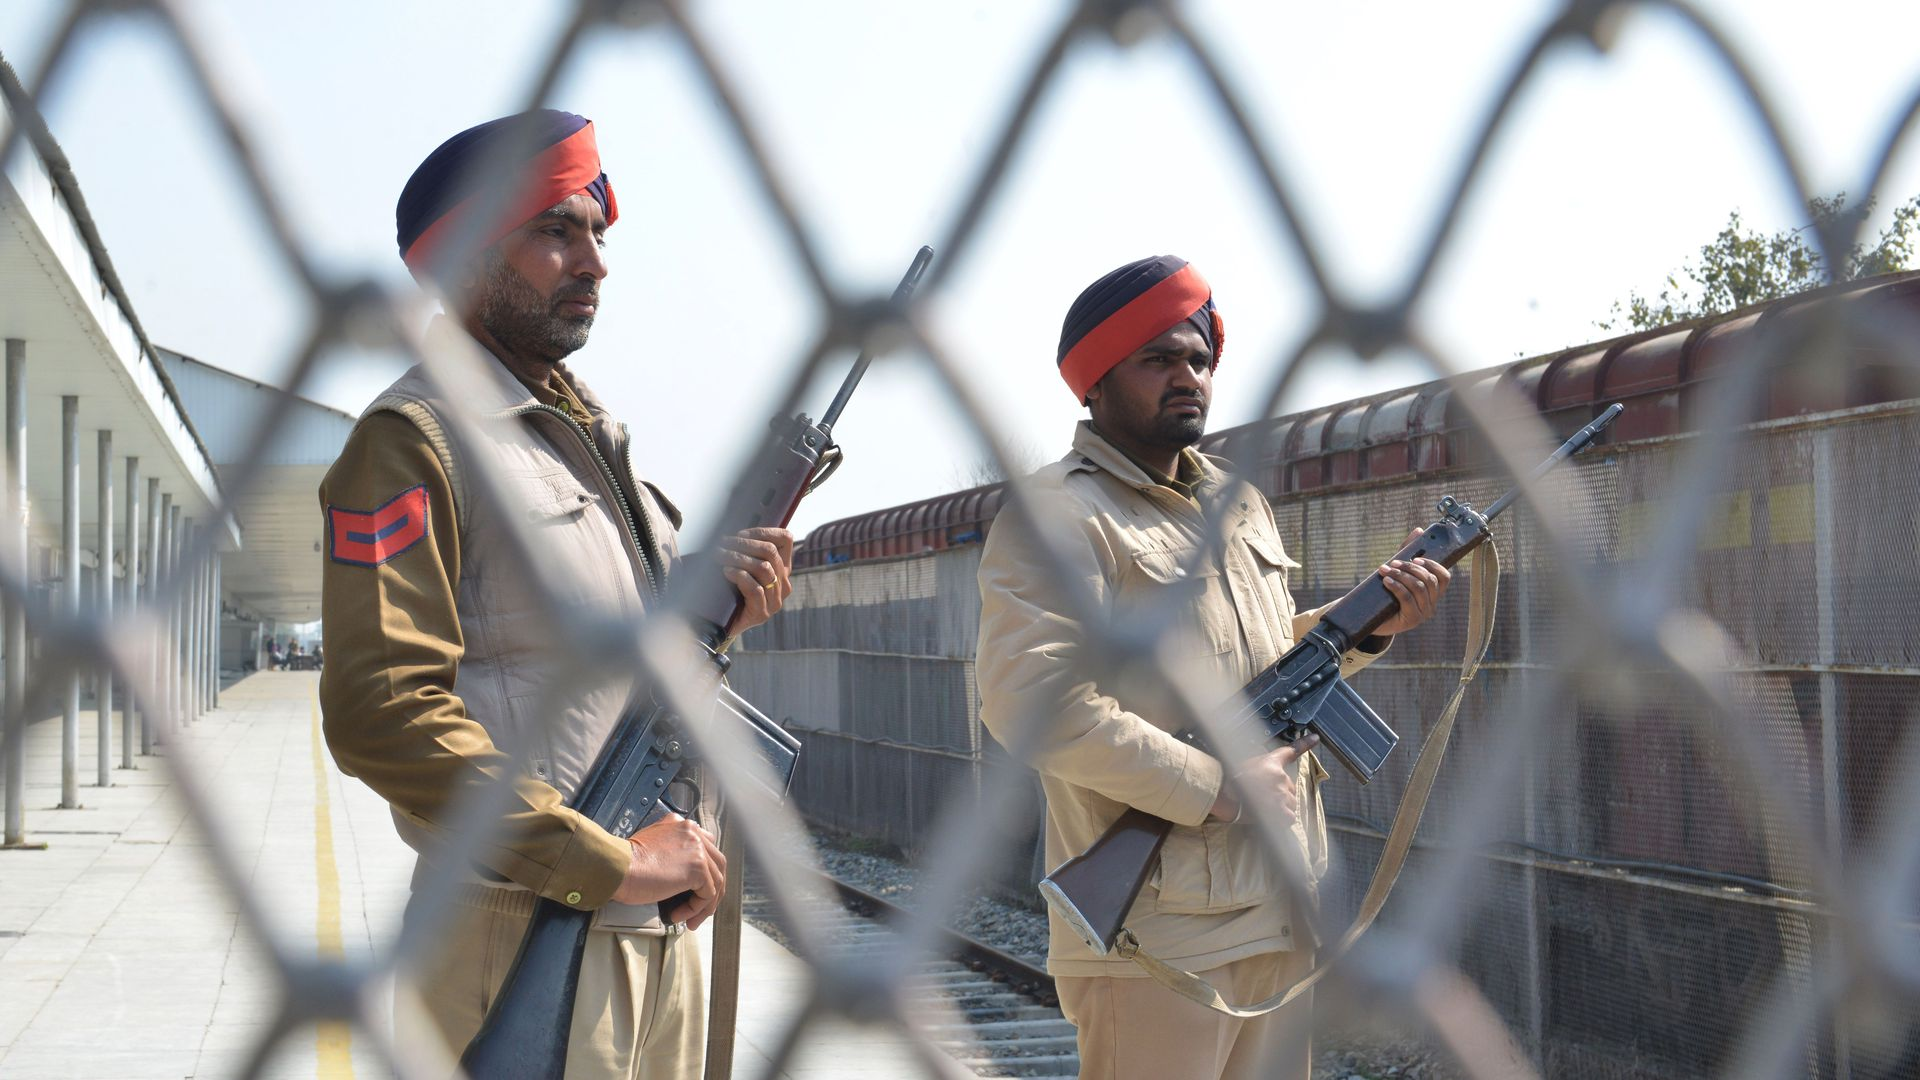 In this image, Indian Punjab Police stand guard with assault weapons behind a gated fence at a train station.